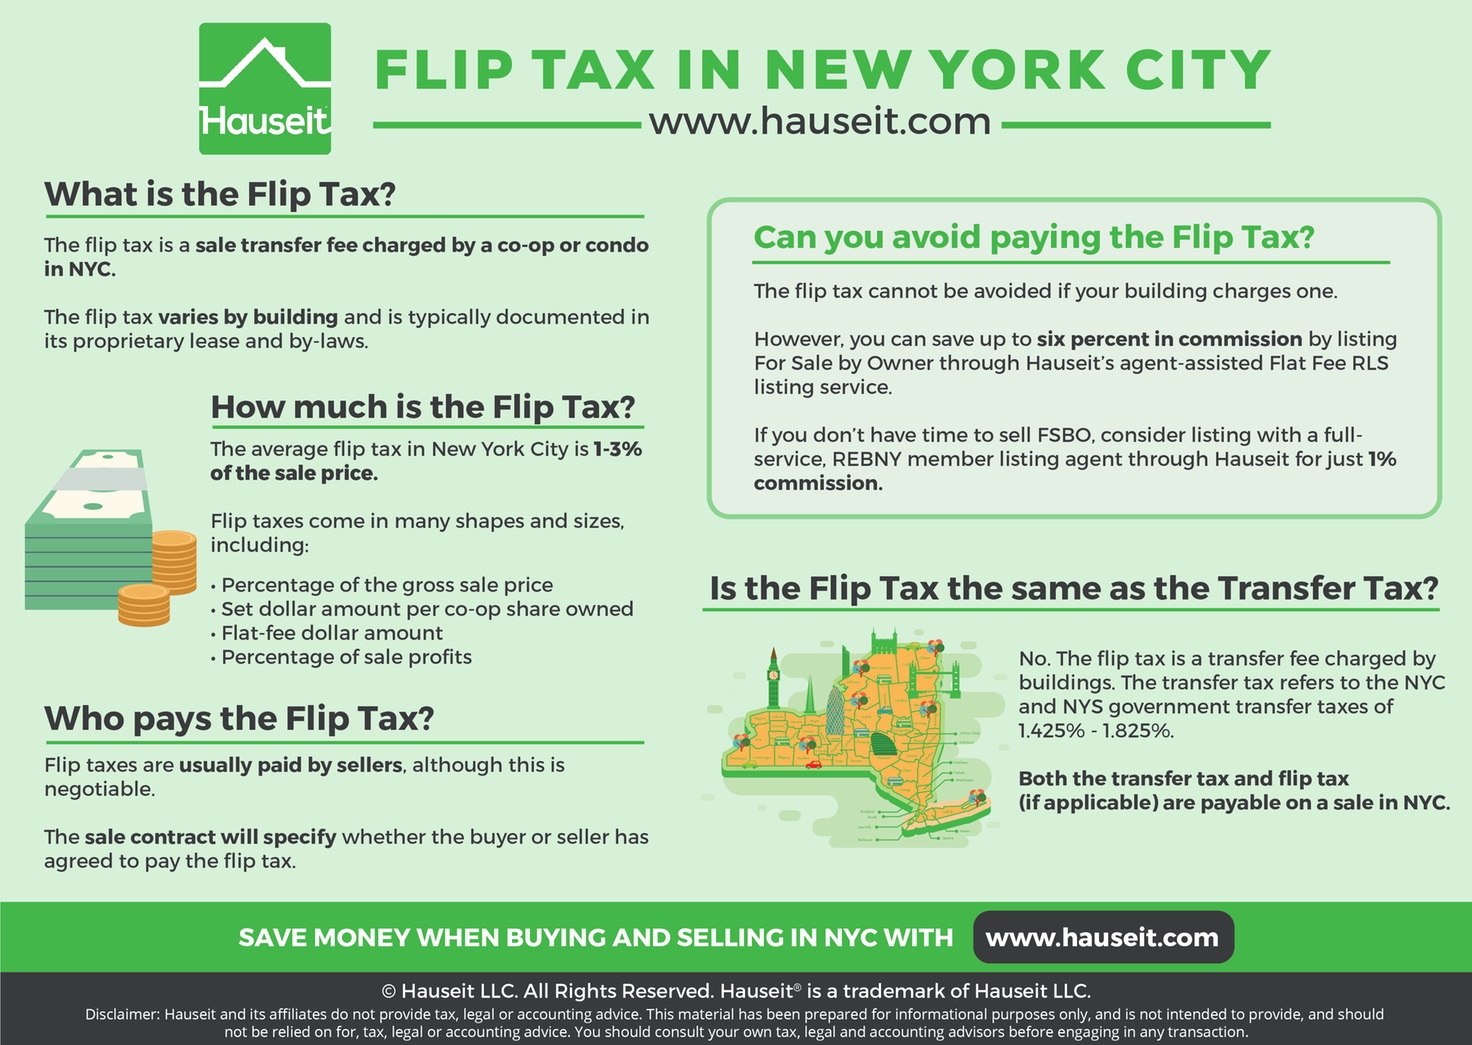 The flip tax in NYC is a transfer fee charged by co-ops and some condos, while the transfer tax is a city and state government transfer tax payable on all sales in NYC.